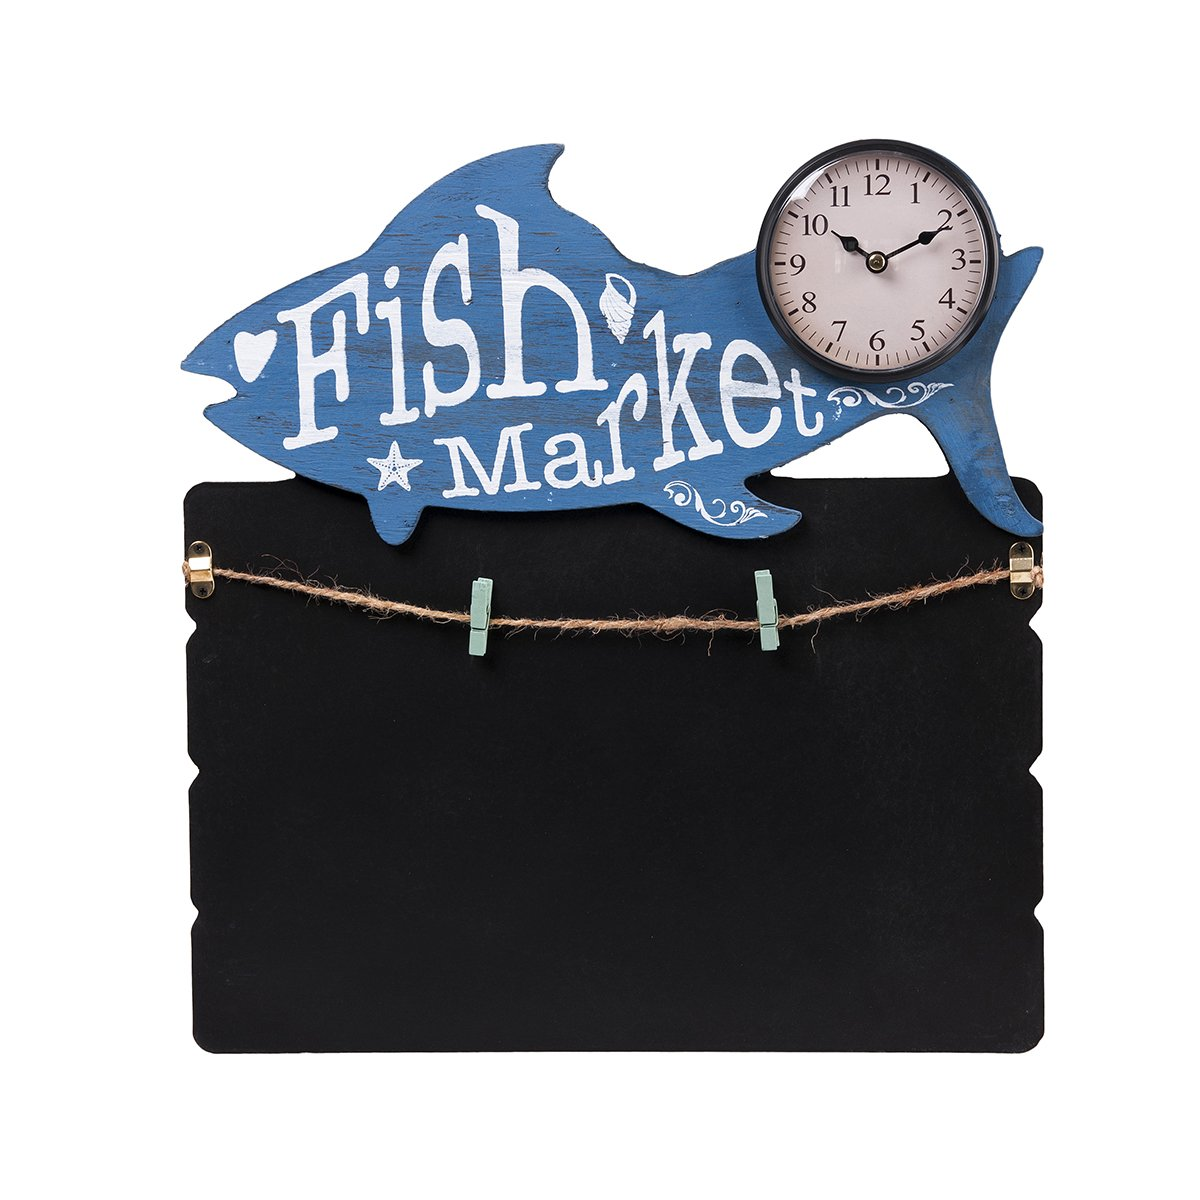 TORCH Decorative Small Lovely Animal Figure Wooden Chalkboard Messageboard with Mini Clock for Hanging and Organizing Prints, Instax, Photos, Artwork (FIS)